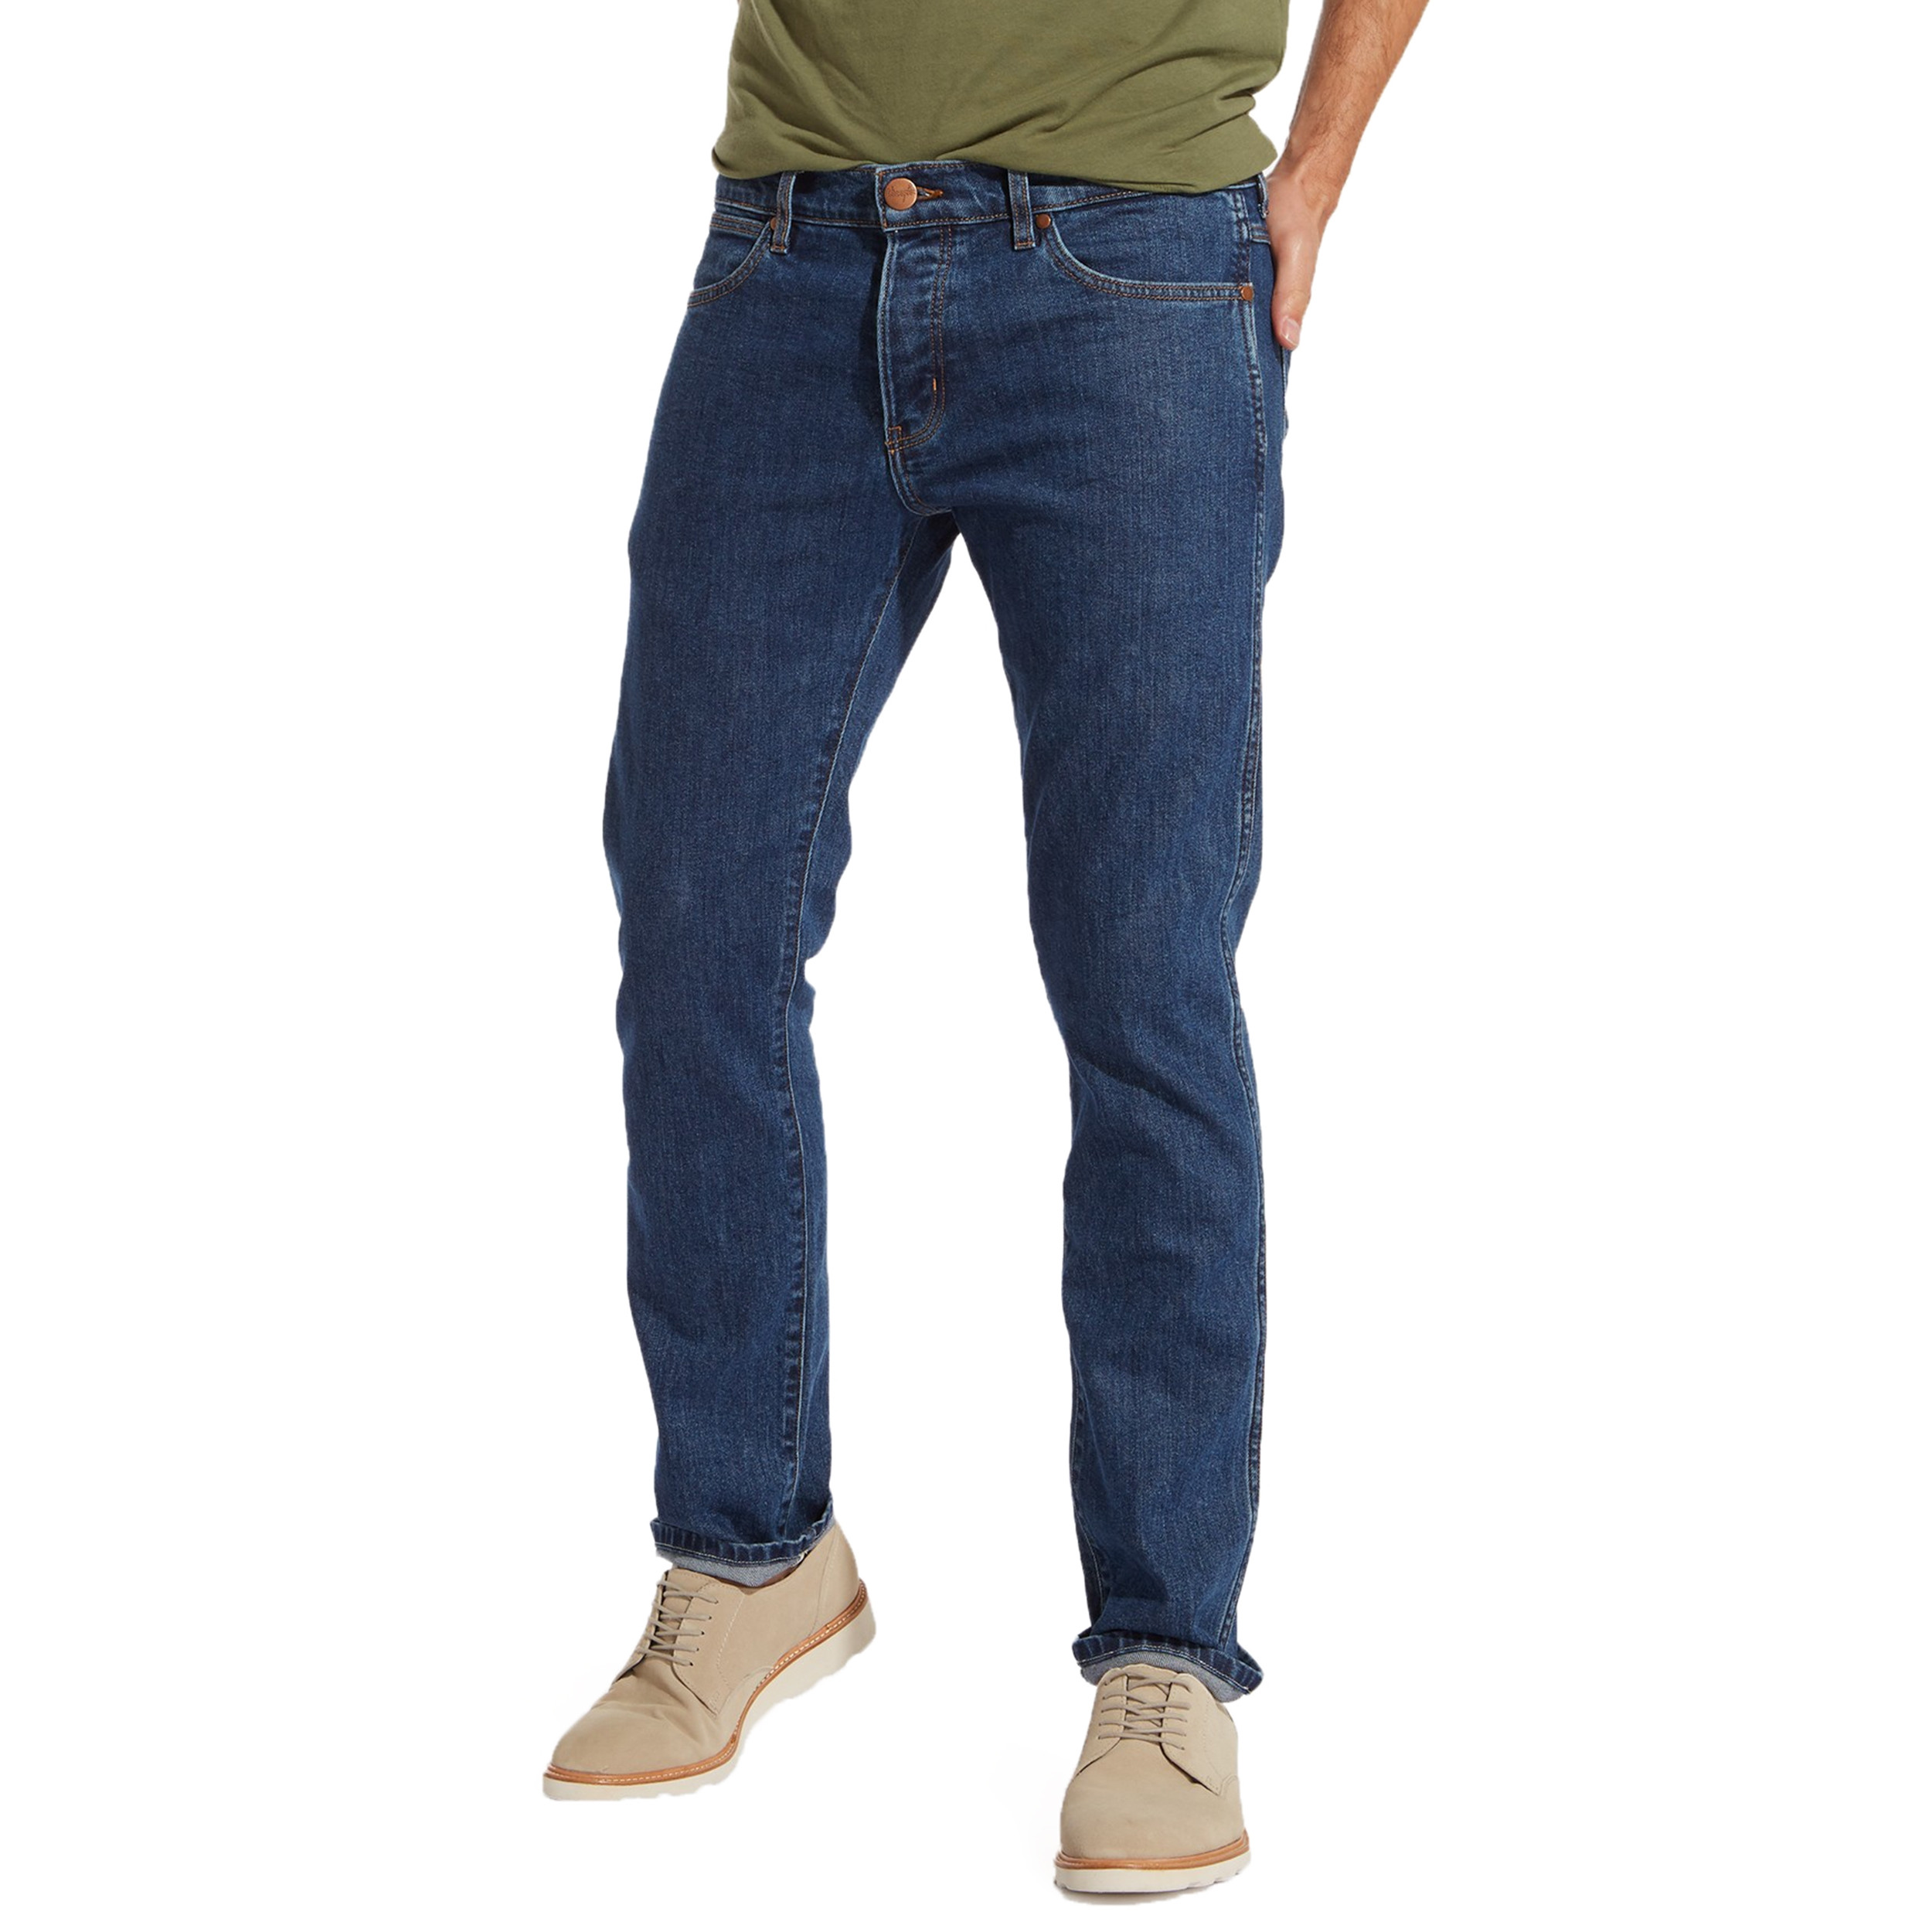 b41ed76dd06 Wrangler Spencer Tapered Slim Jeans Darkstone | Jean Scene